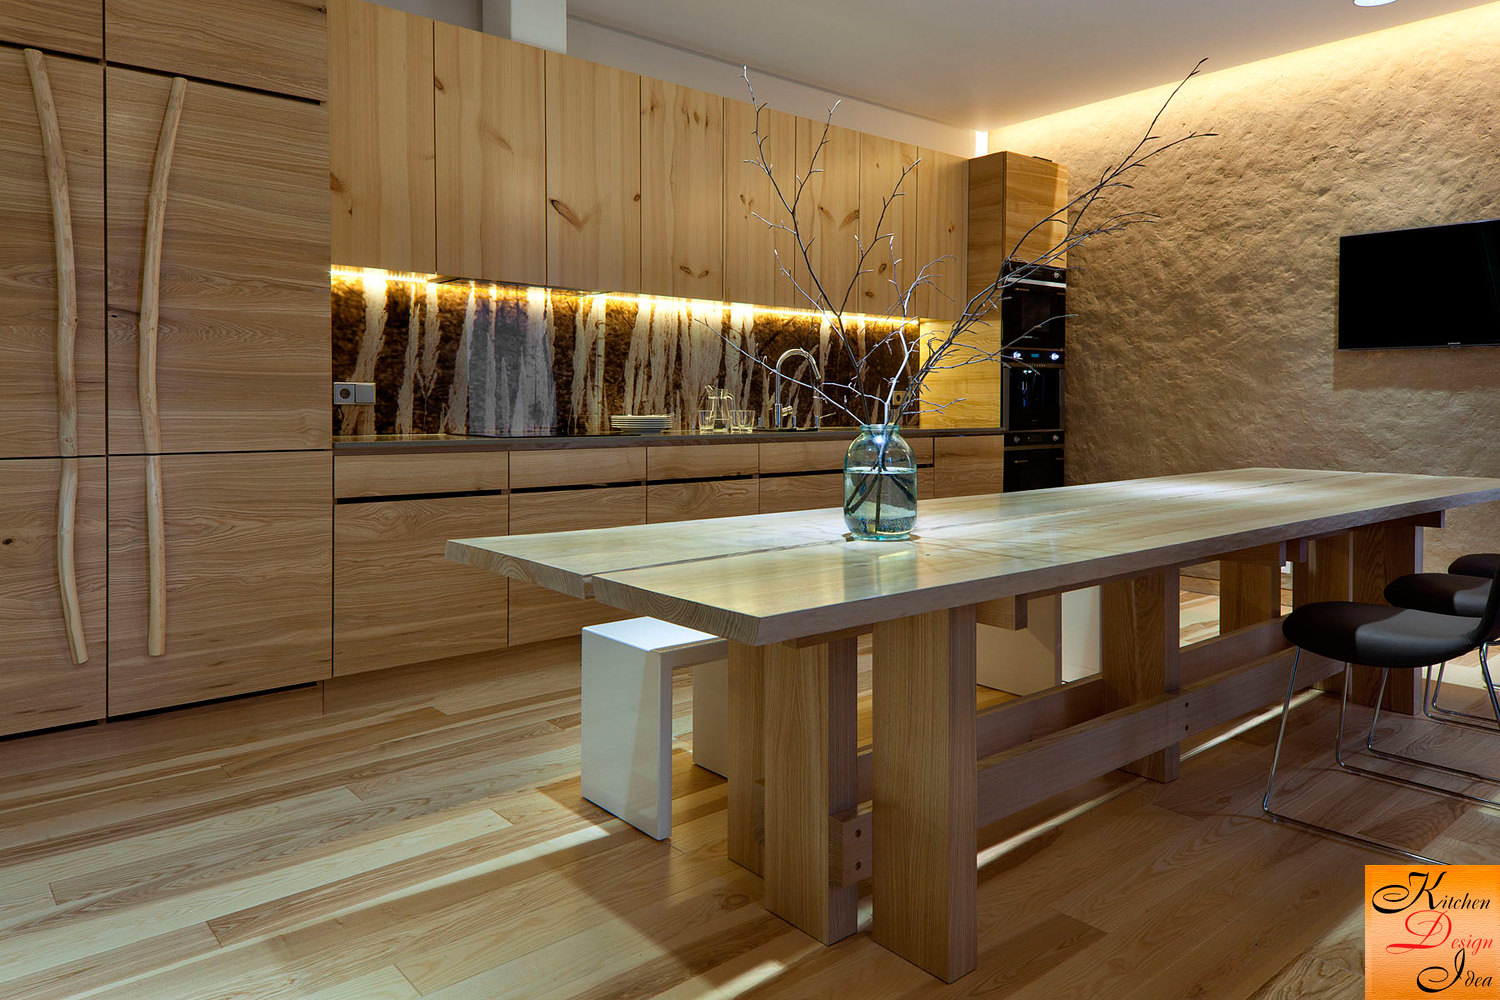 Picturesque Best Kitchen Of The Worlds Design In Japanese Style Acnn Decor